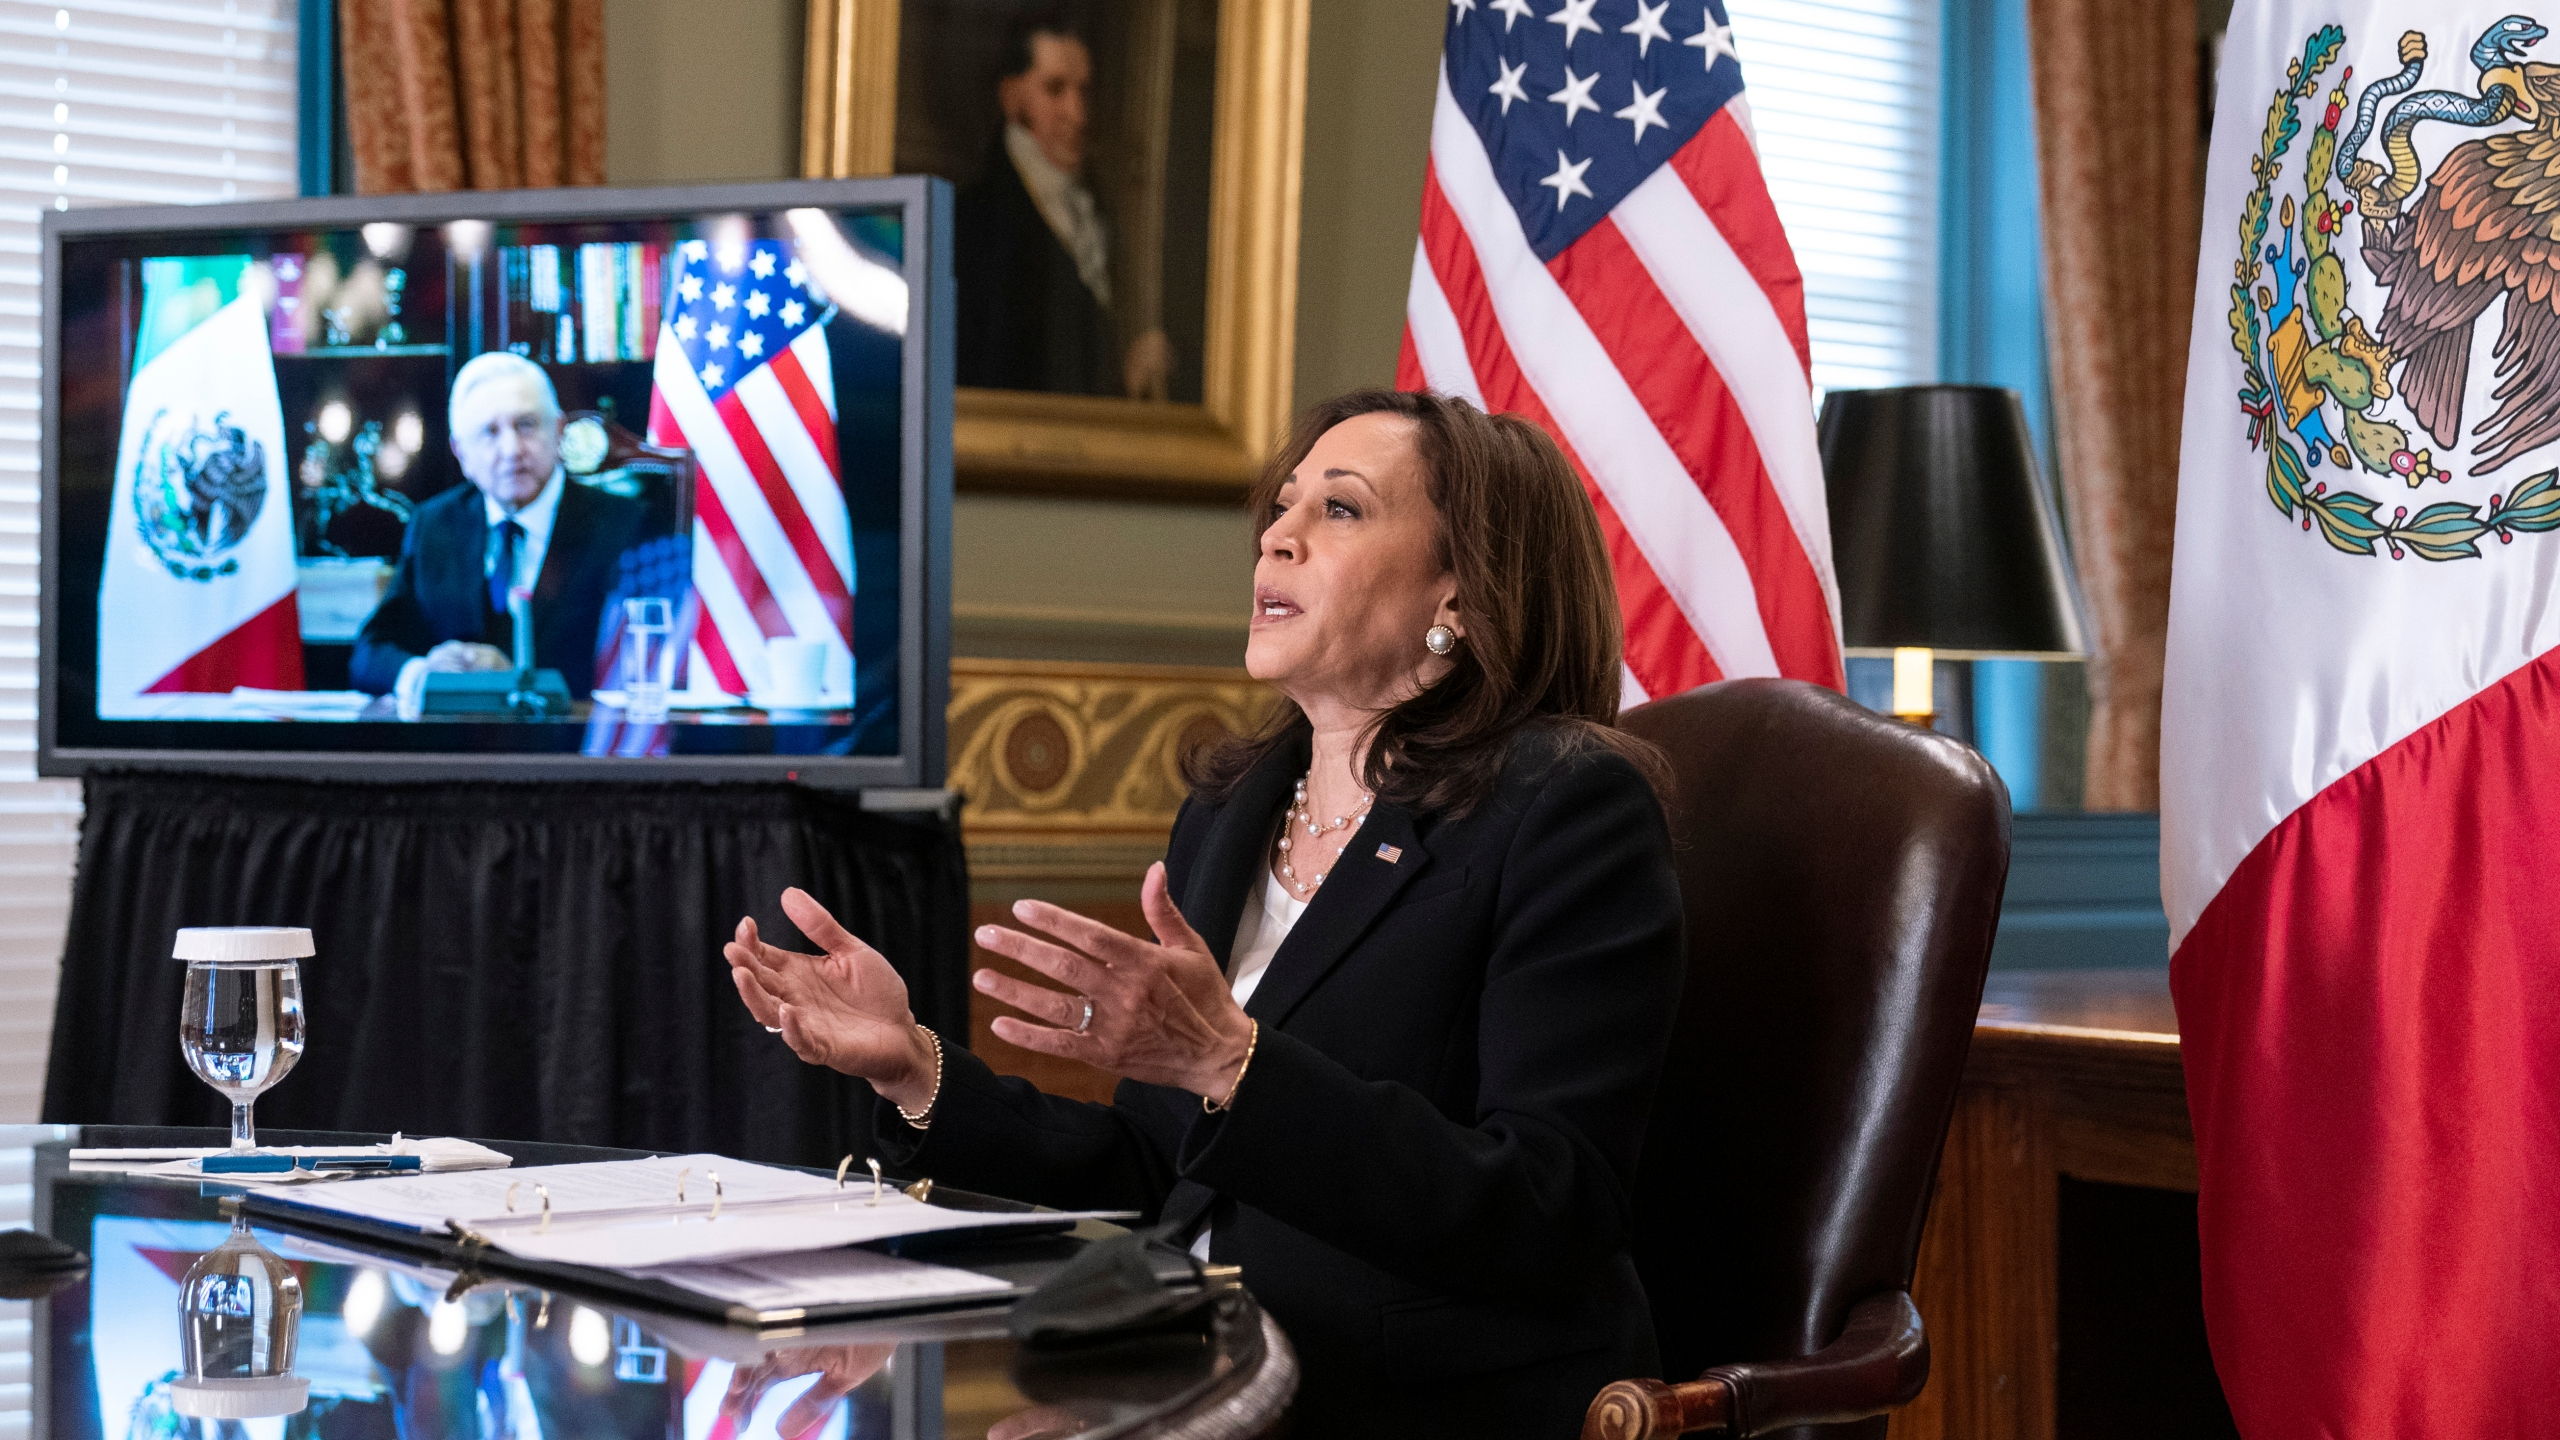 Vice President Kamala Harris speaks during a virtual meeting with Mexican President Andres Manuel Lopez Obrador at the Eisenhower Executive Office Building at the White House on May 7, 2021. (Manuel Balce Ceneta/Associated Press)